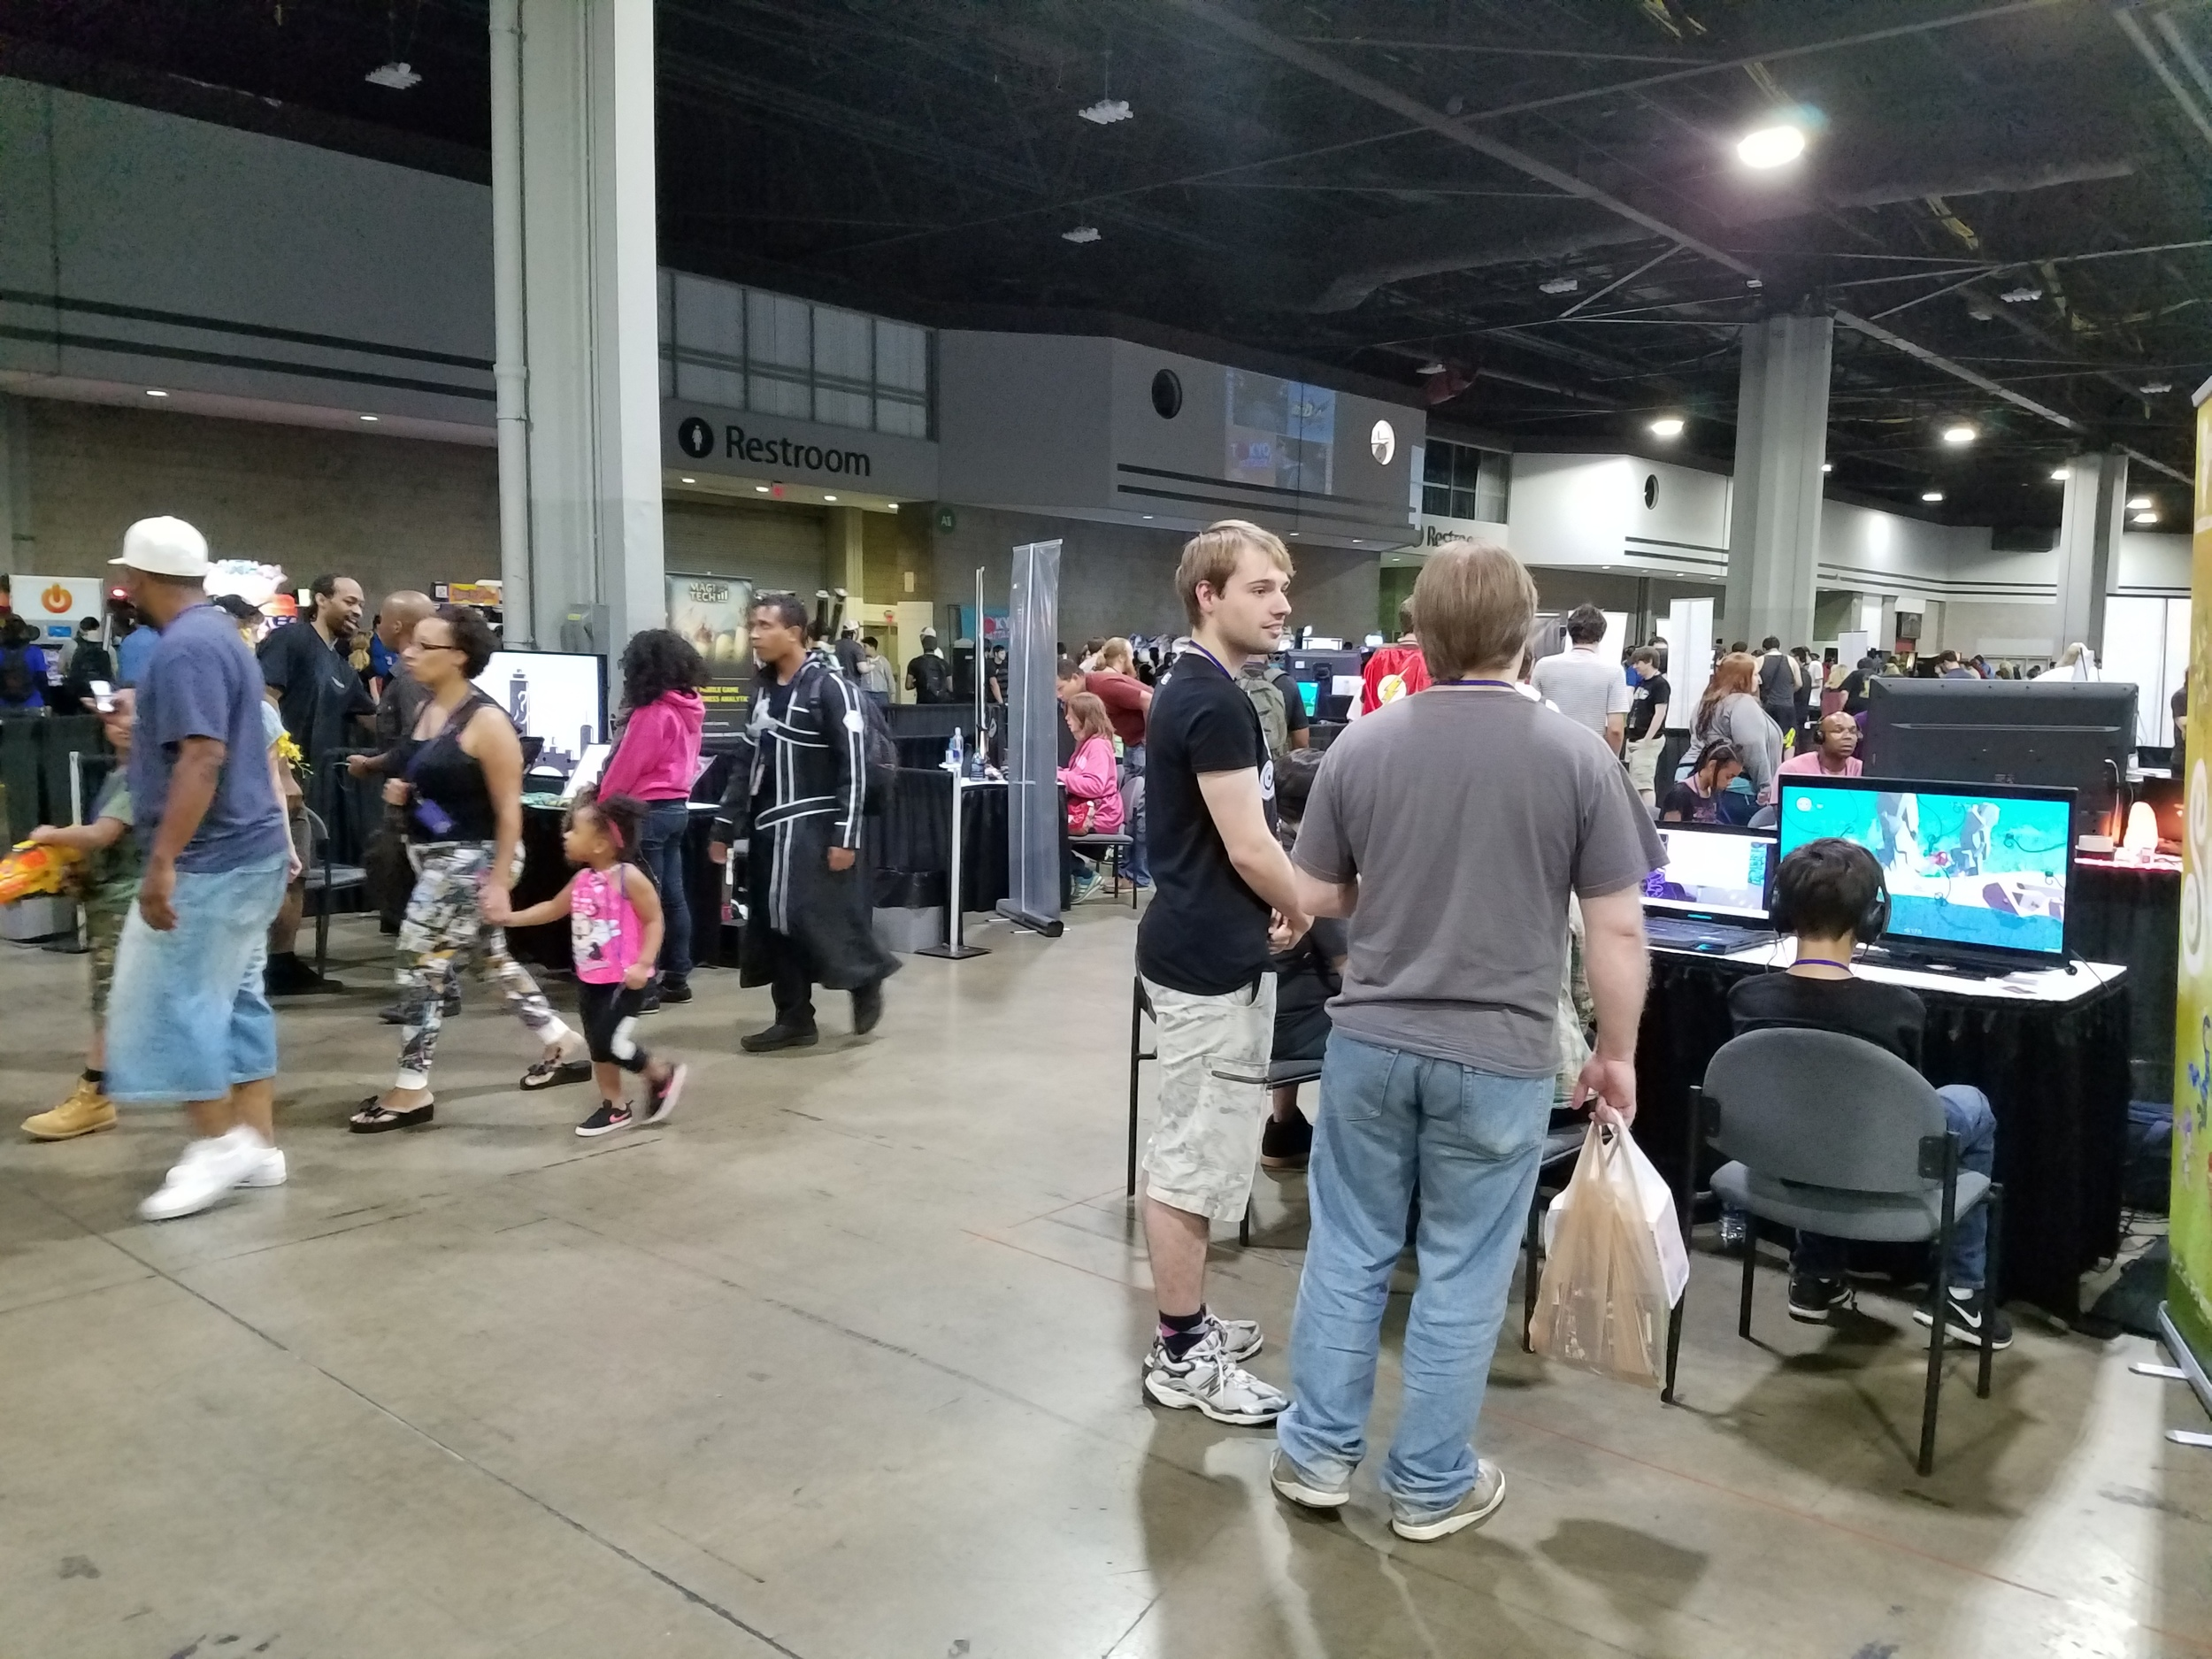 LOTS OF GAMING. There were arcade games to the left, indie games in the middle, and console games (not shown) on the right, as well as tabletop gaming (not shown) in the back on the right.